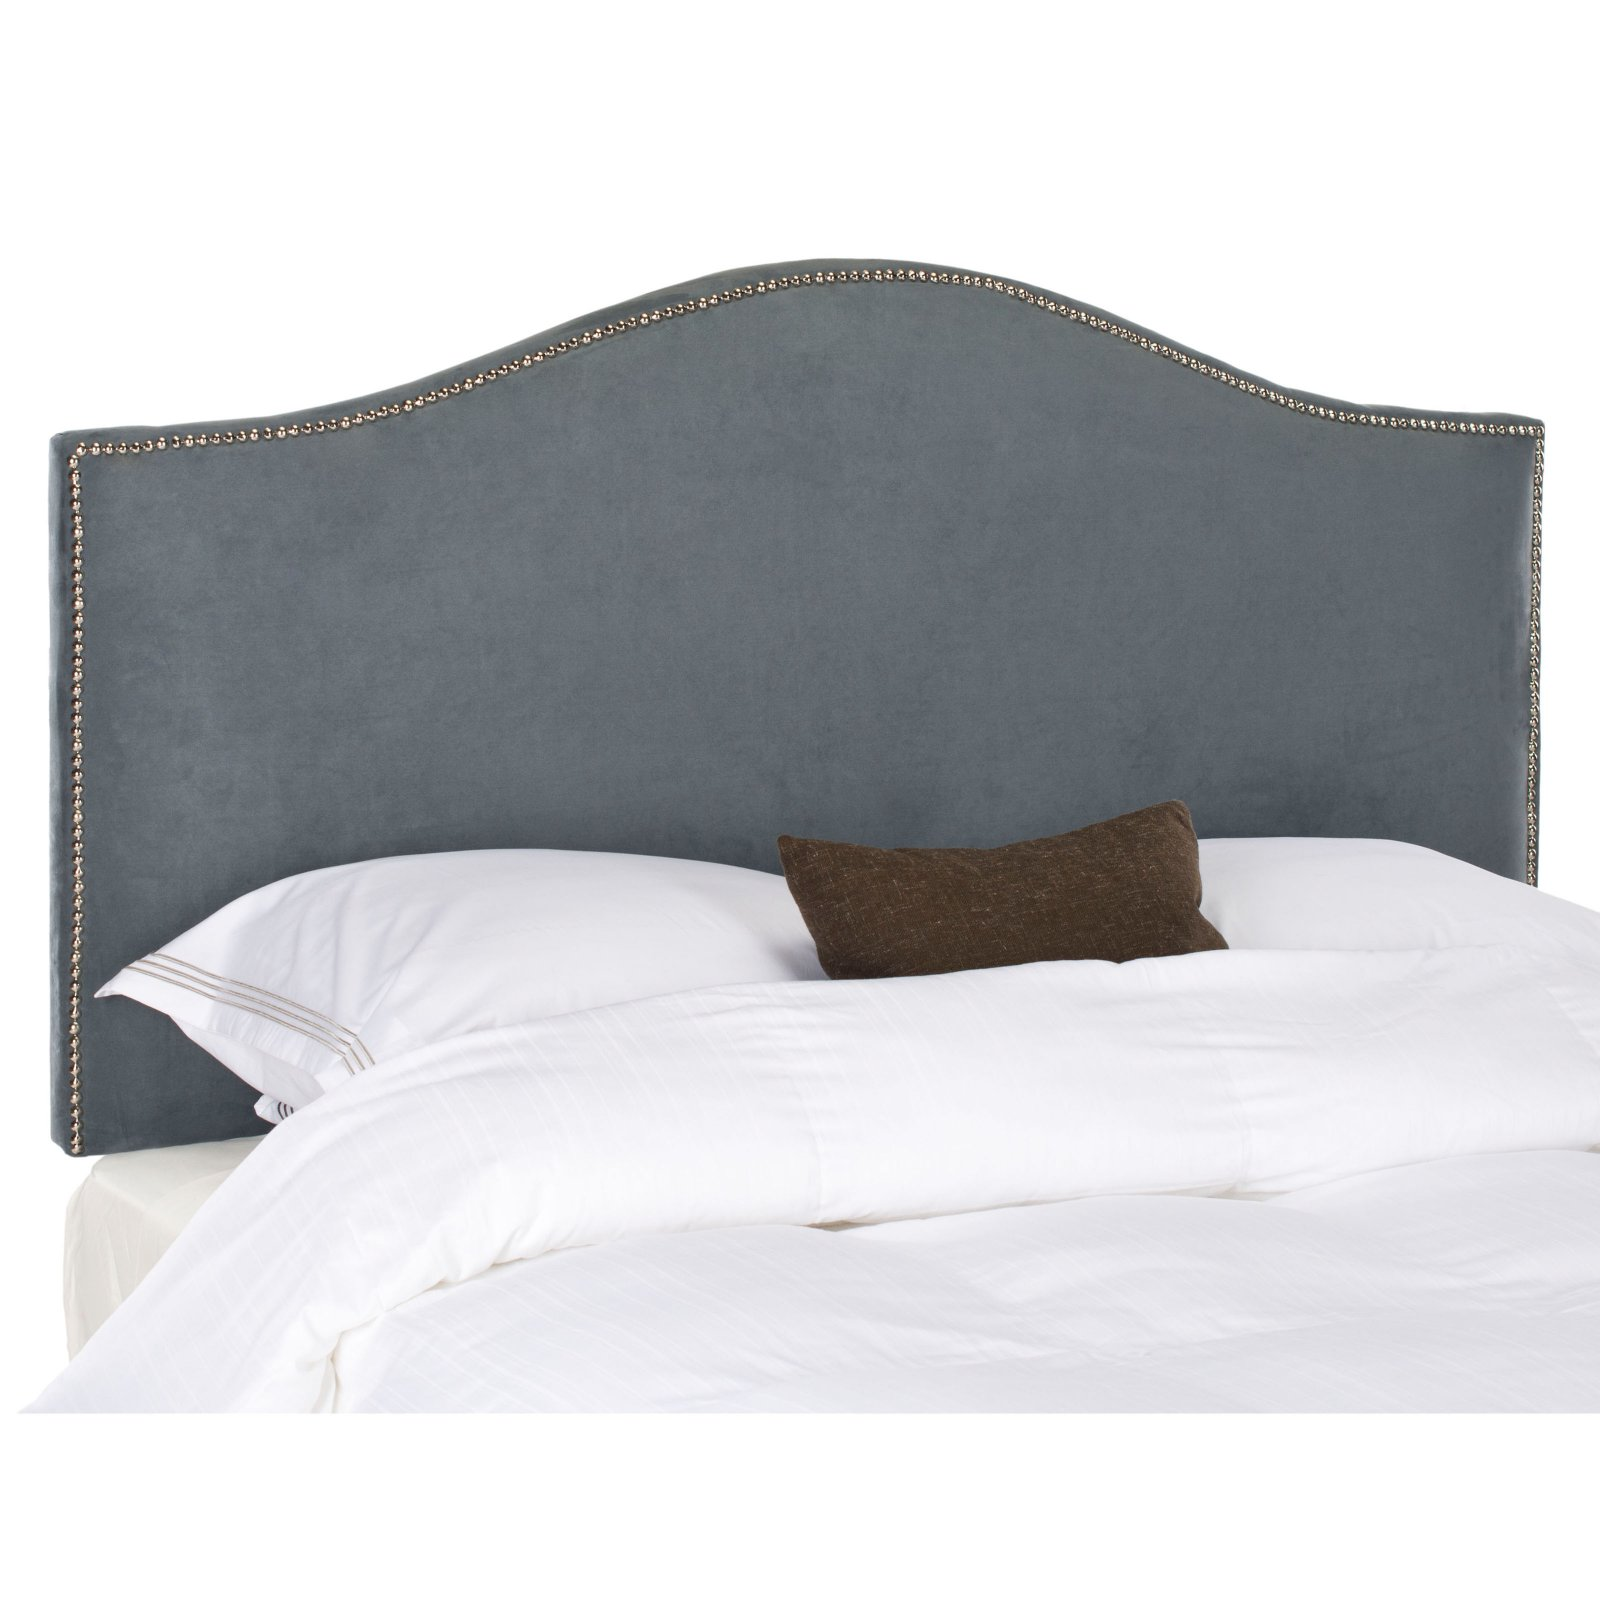 Safavieh Connie Upholstered Headboard With Nailhead Trim